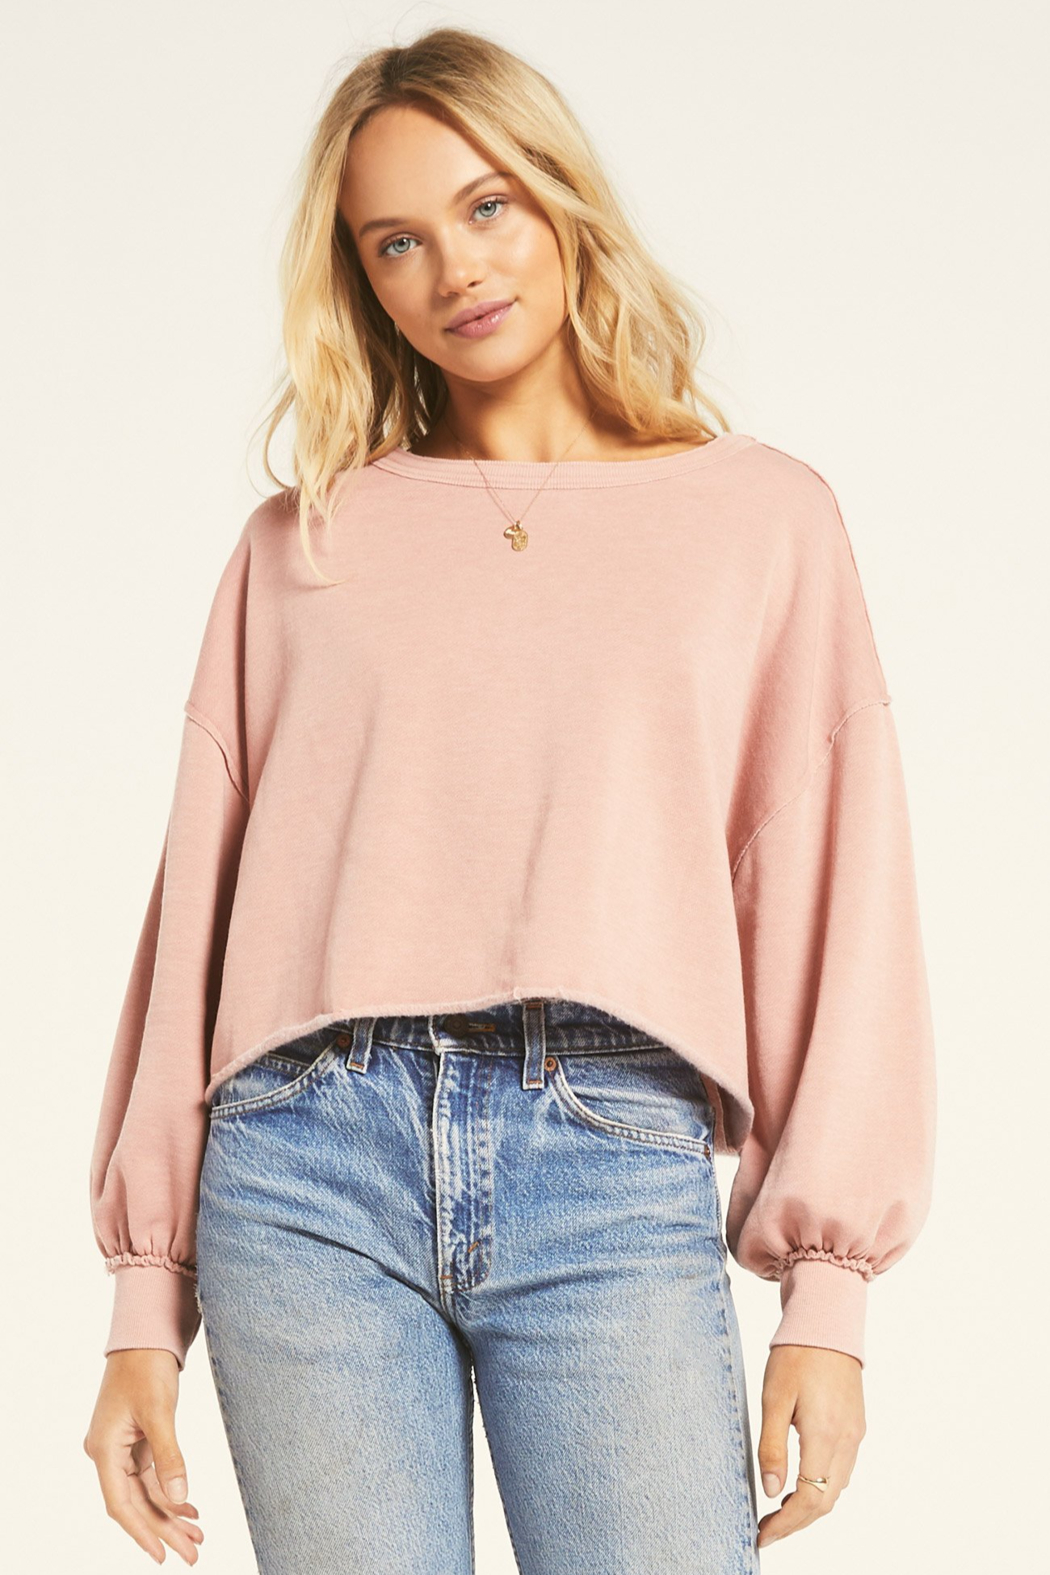 z supply Tempest Sweatshirt - Front Cropped Image